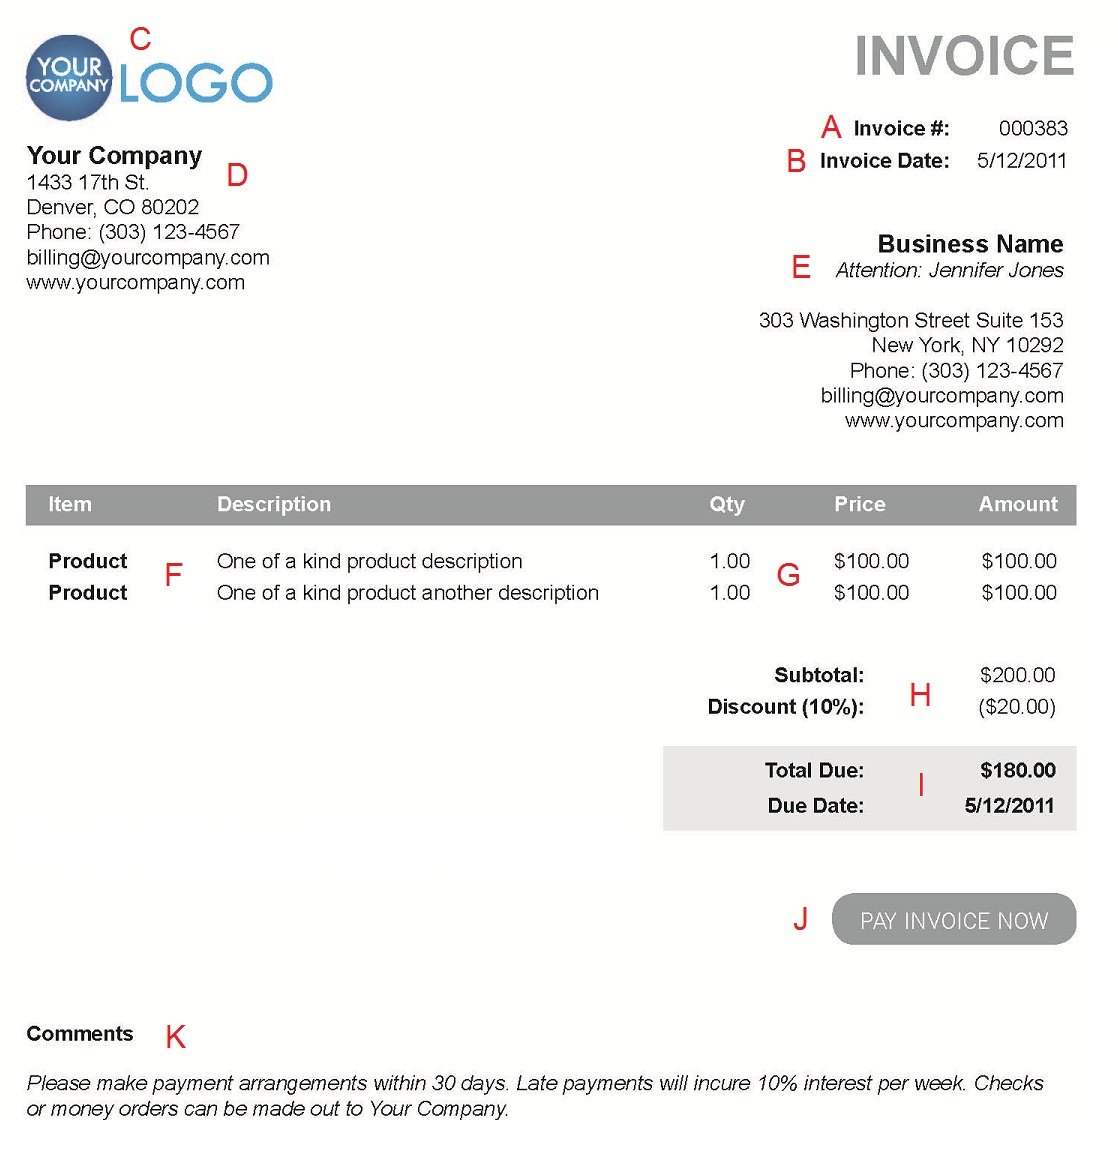 Picnictoimpeachus  Picturesque The  Different Sections Of An Electronic Payment Invoice With Foxy A  With Appealing Sample Invoice Consulting Services Also Billing Invoice Samples In Addition Invoicing System Excel And Invoice Sample Word Format As Well As Blank Invoice Template Free Additionally Table For Invoice Document In Sap From Paysimplecom With Picnictoimpeachus  Foxy The  Different Sections Of An Electronic Payment Invoice With Appealing A  And Picturesque Sample Invoice Consulting Services Also Billing Invoice Samples In Addition Invoicing System Excel From Paysimplecom